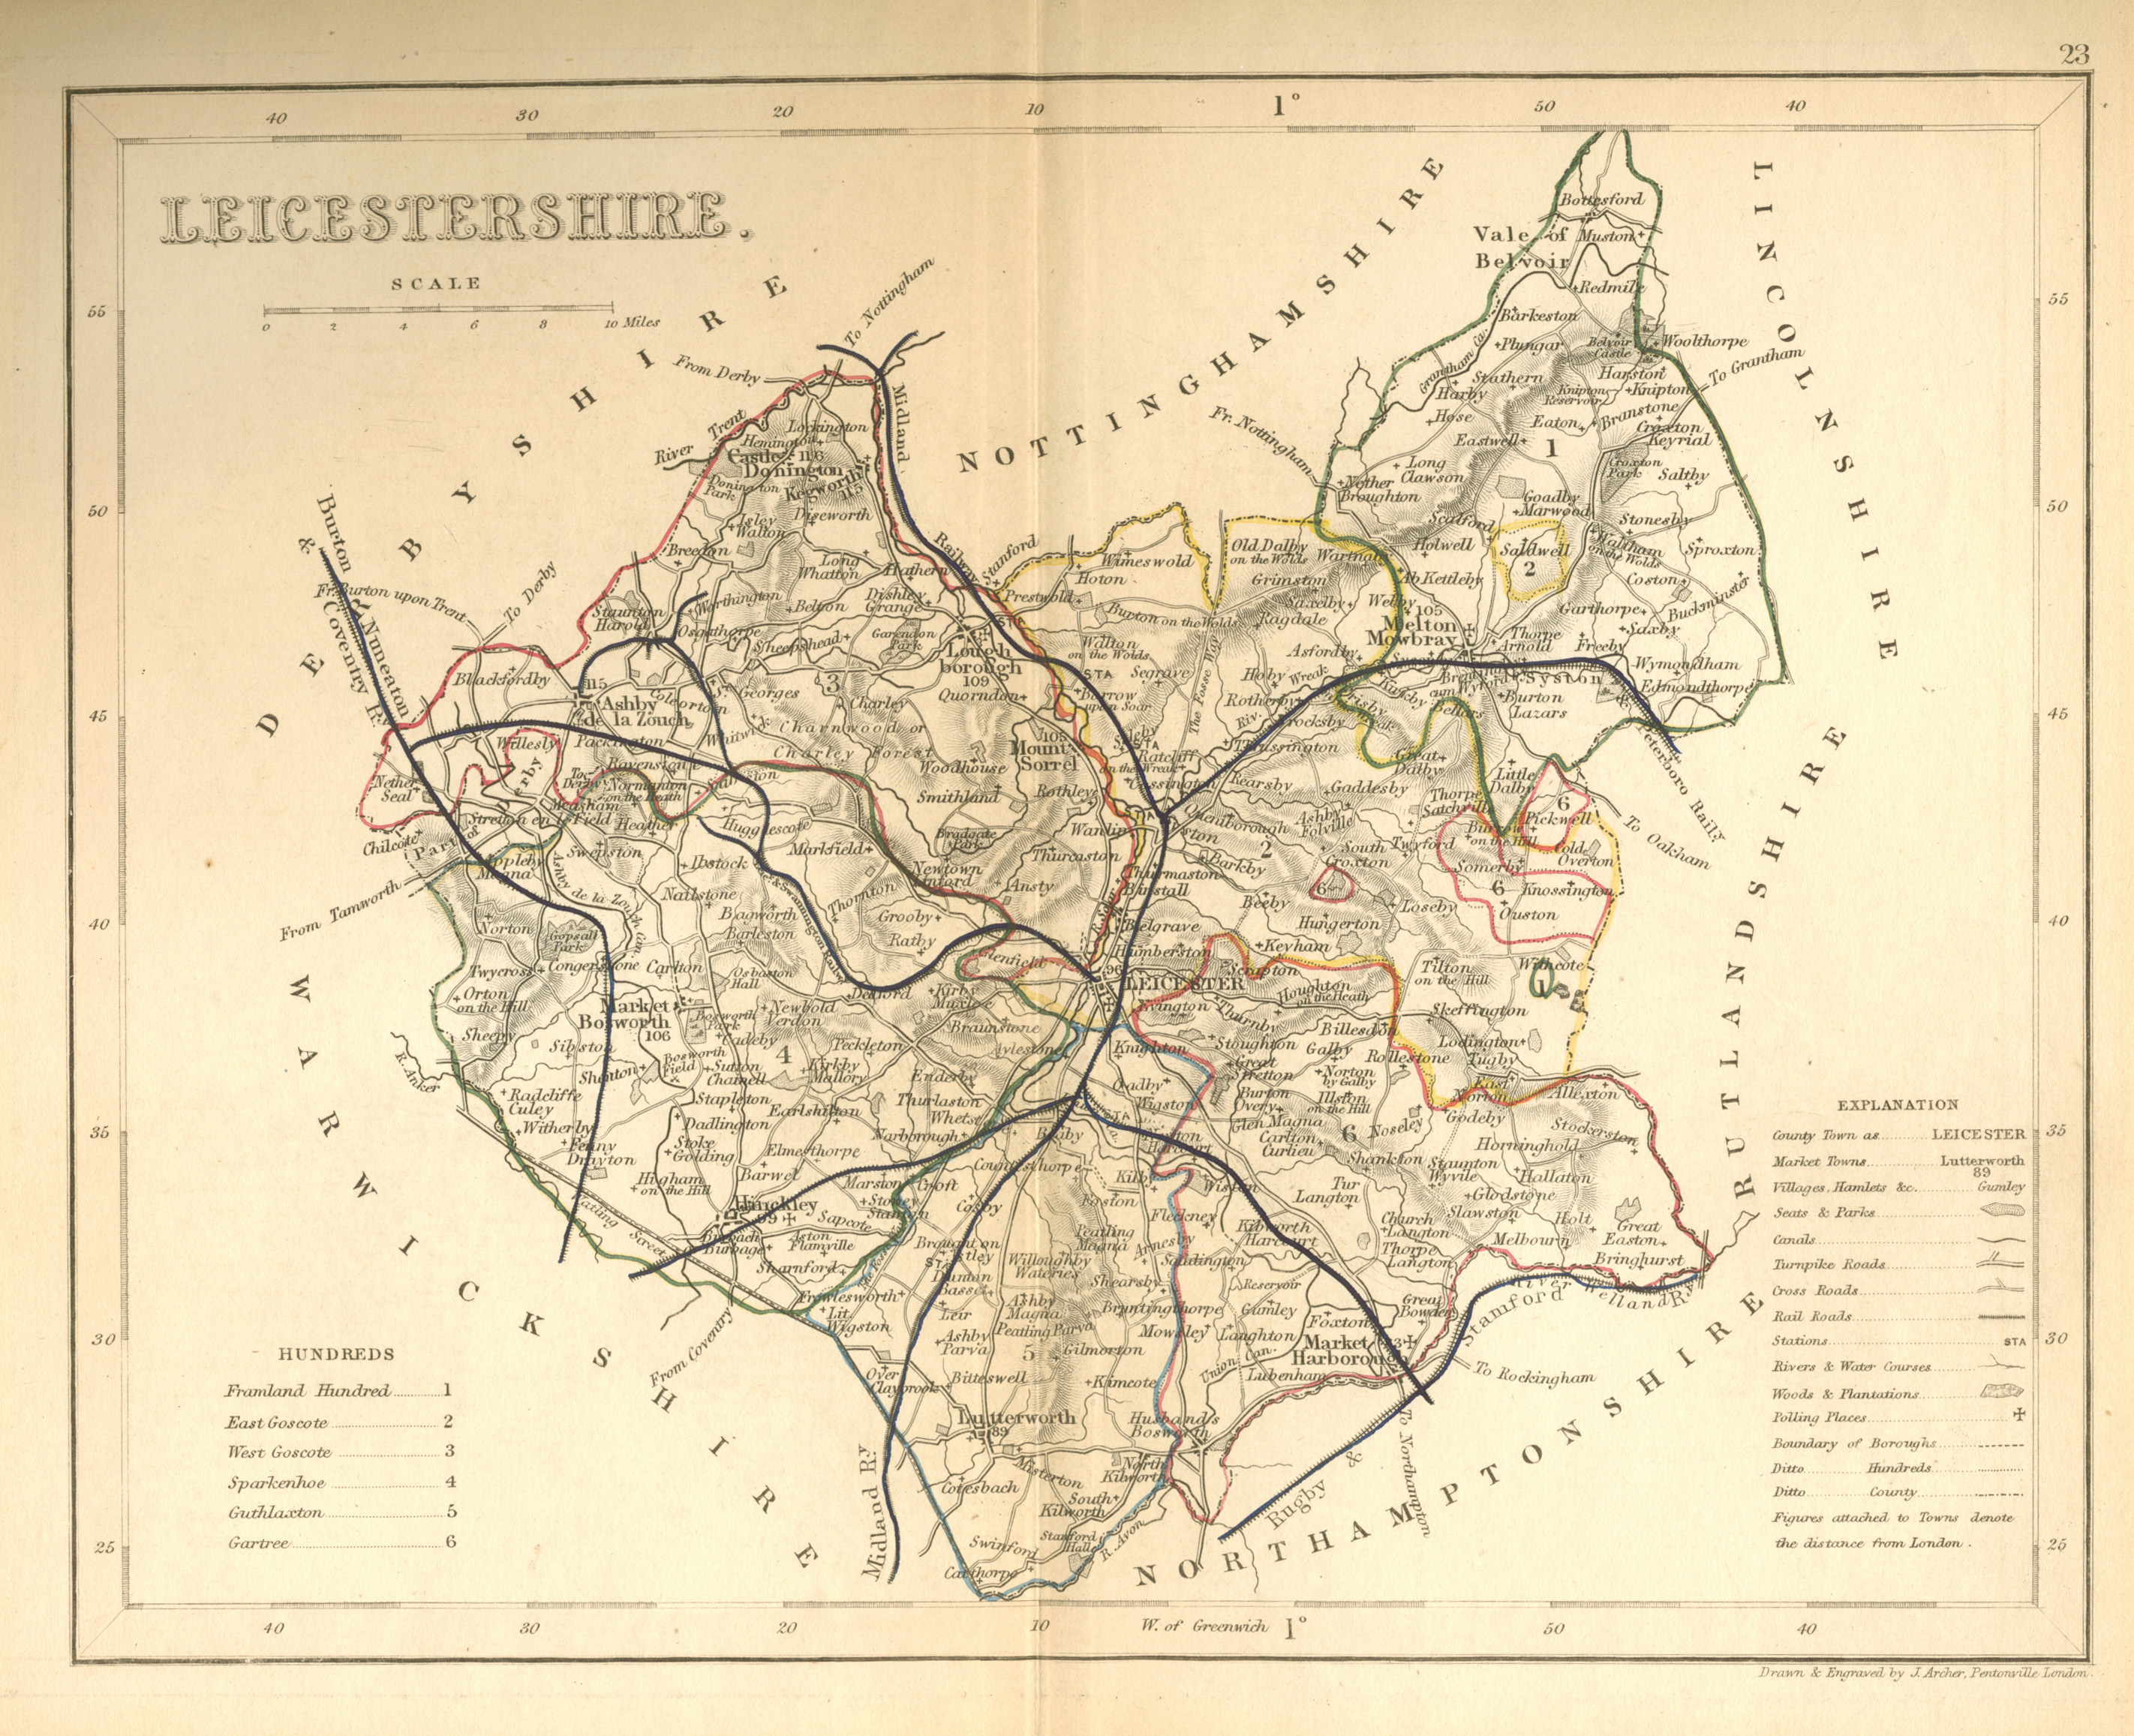 Leicestershire antique county map by Joshua Archer c1854.